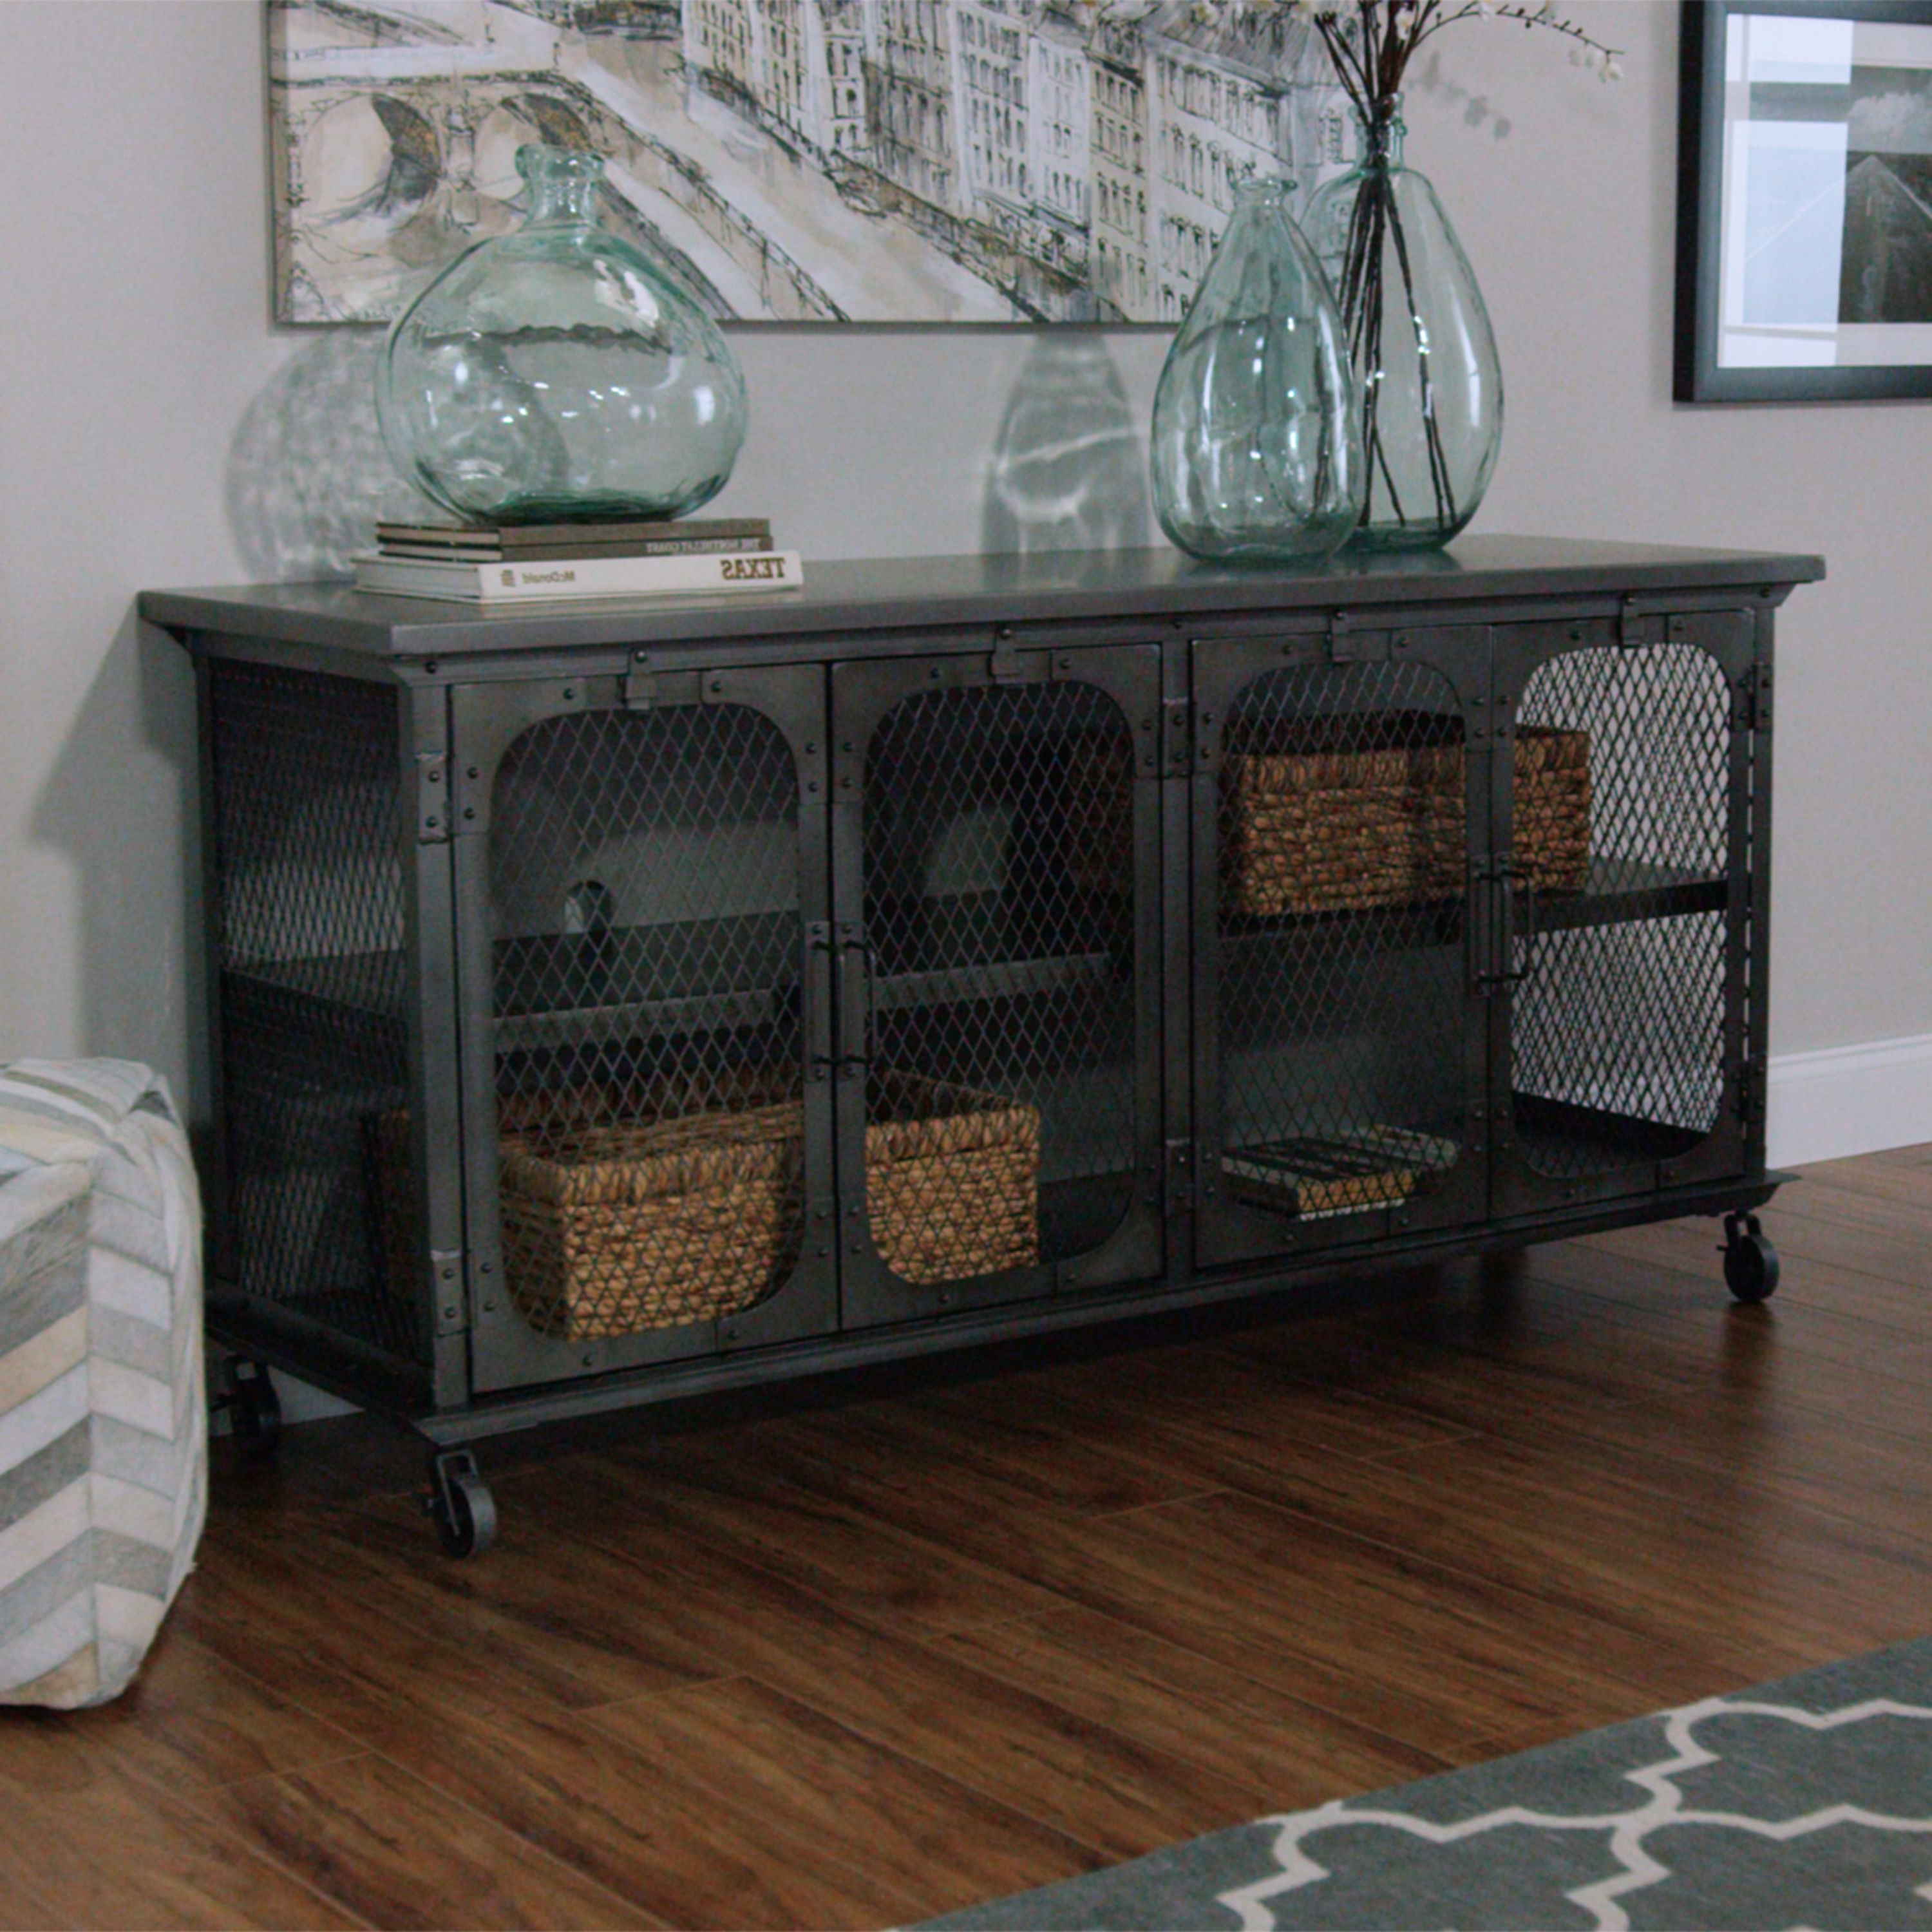 Widely Used Industrial Tv Cabinets In Exuding An Industrial Appeal, Our Tv Stand Features An All Metal (View 12 of 20)